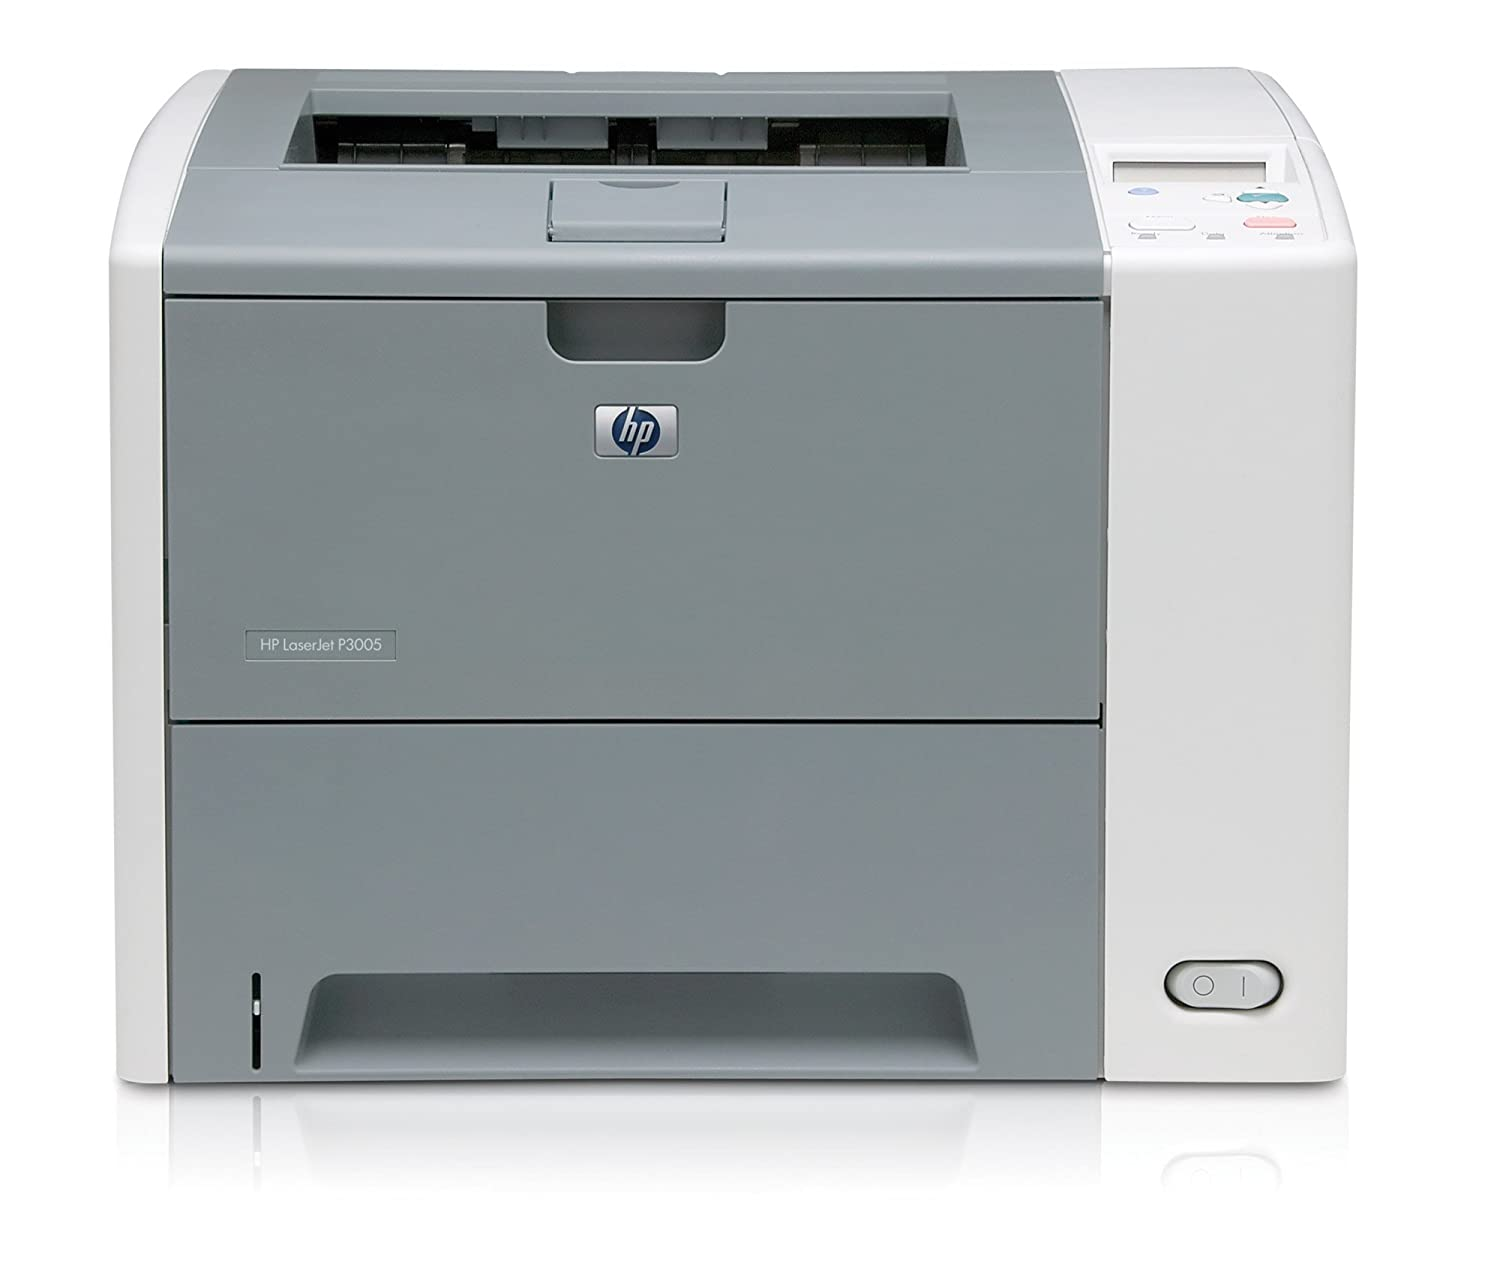 P3005 HP PRINTER DRIVER WINDOWS